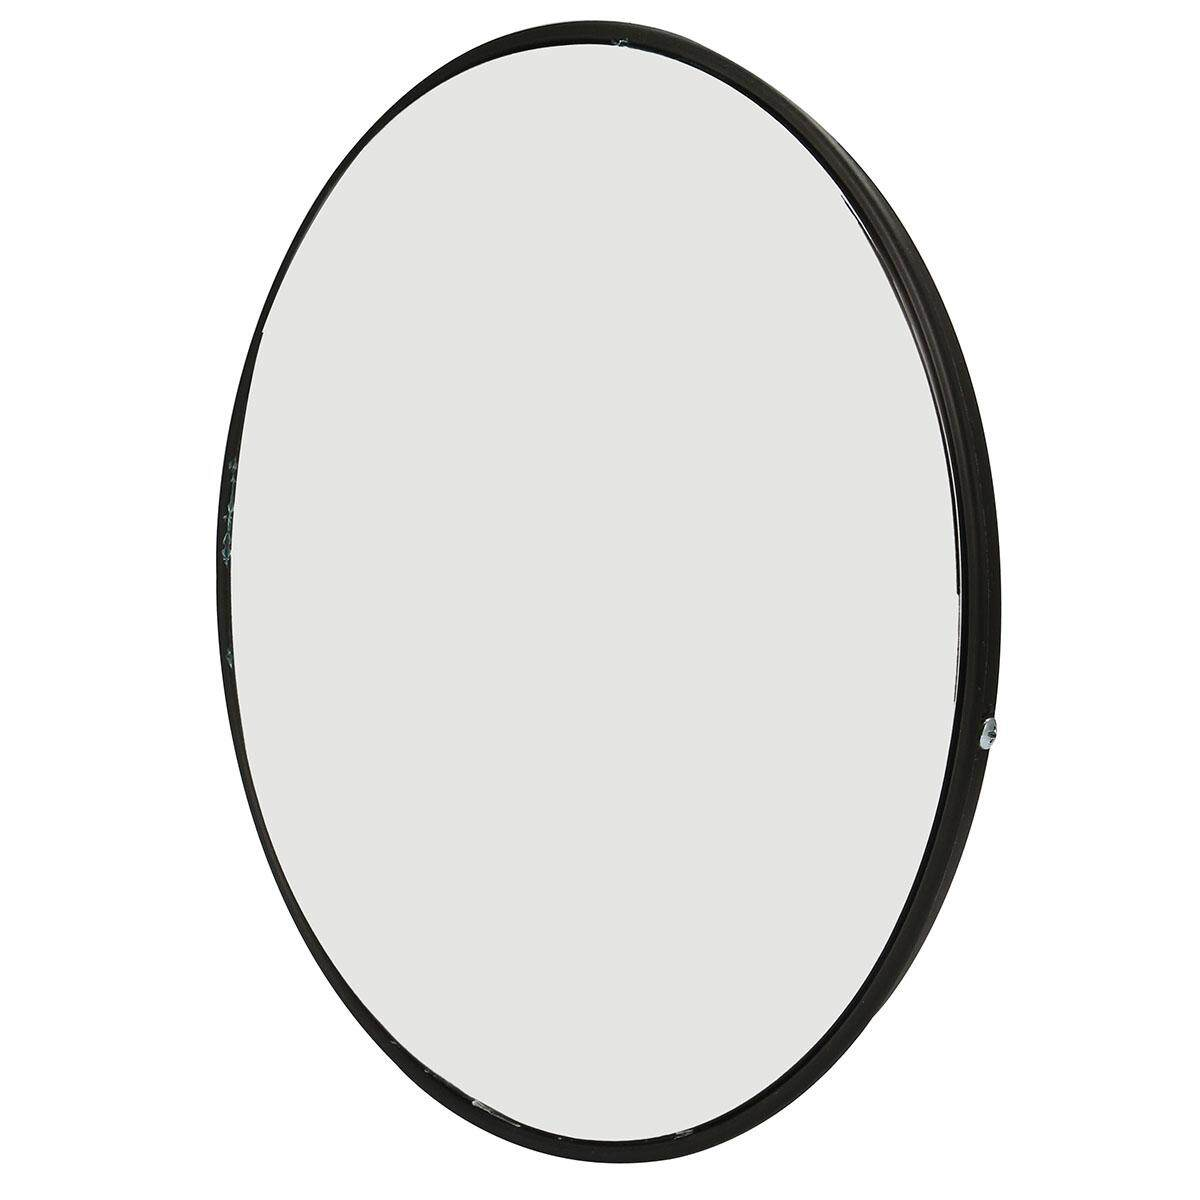 30/45/60cm Traffic Safety Wide-angle Mirror Angle Convex Security Wall Dome# 30 cm